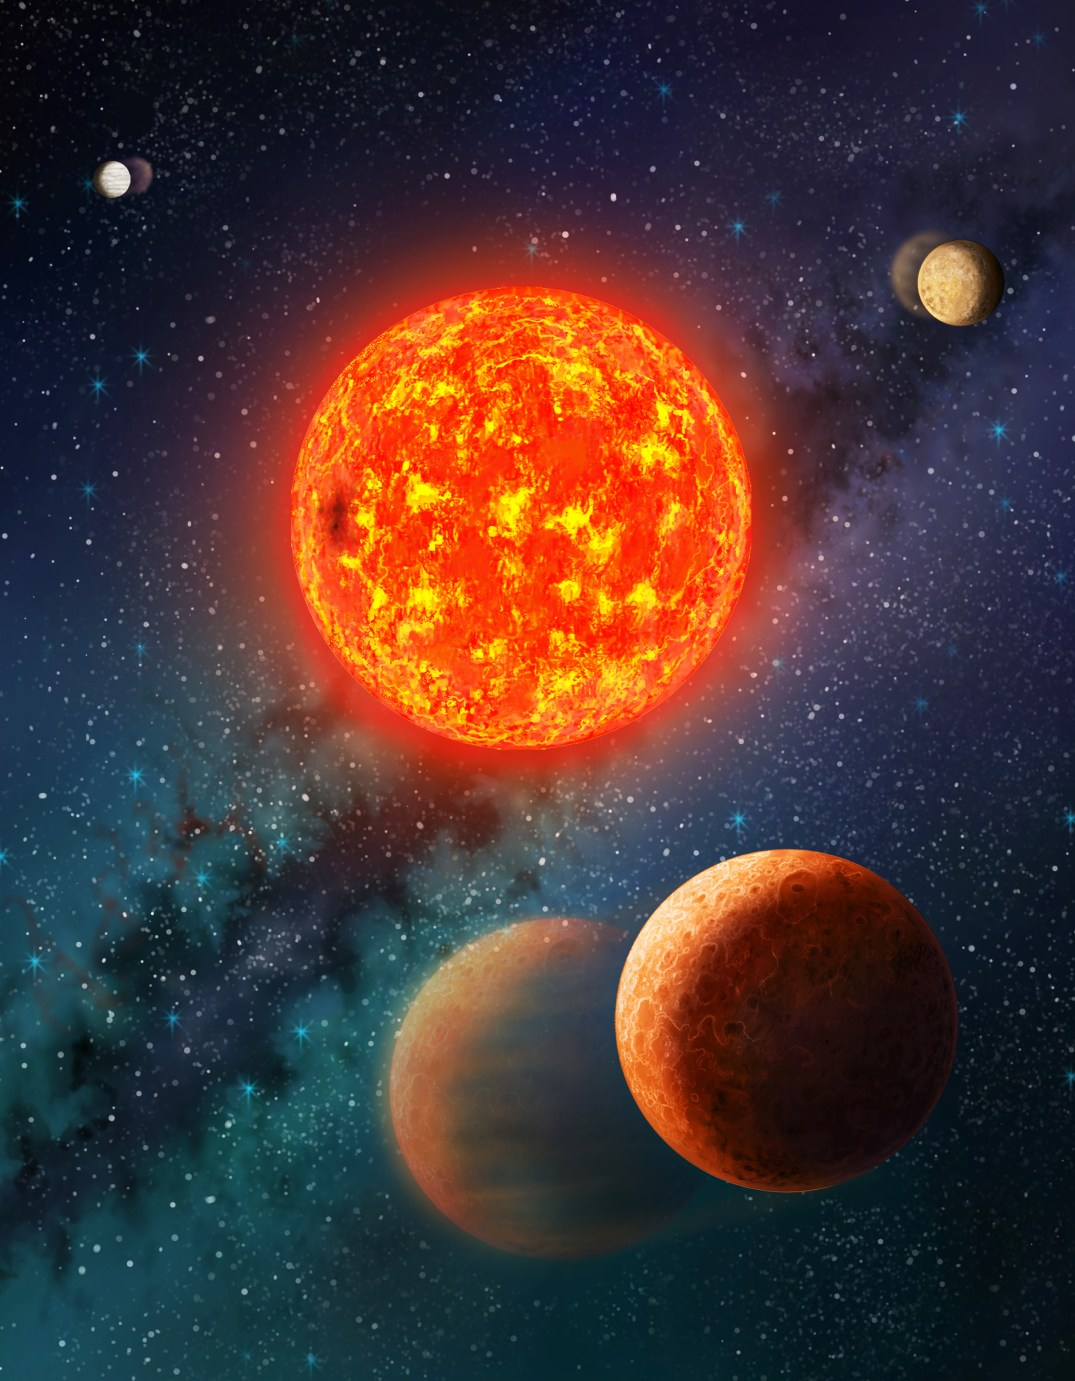 http://www.seti.org/sites/default/files/kepler-138b-full.jpg